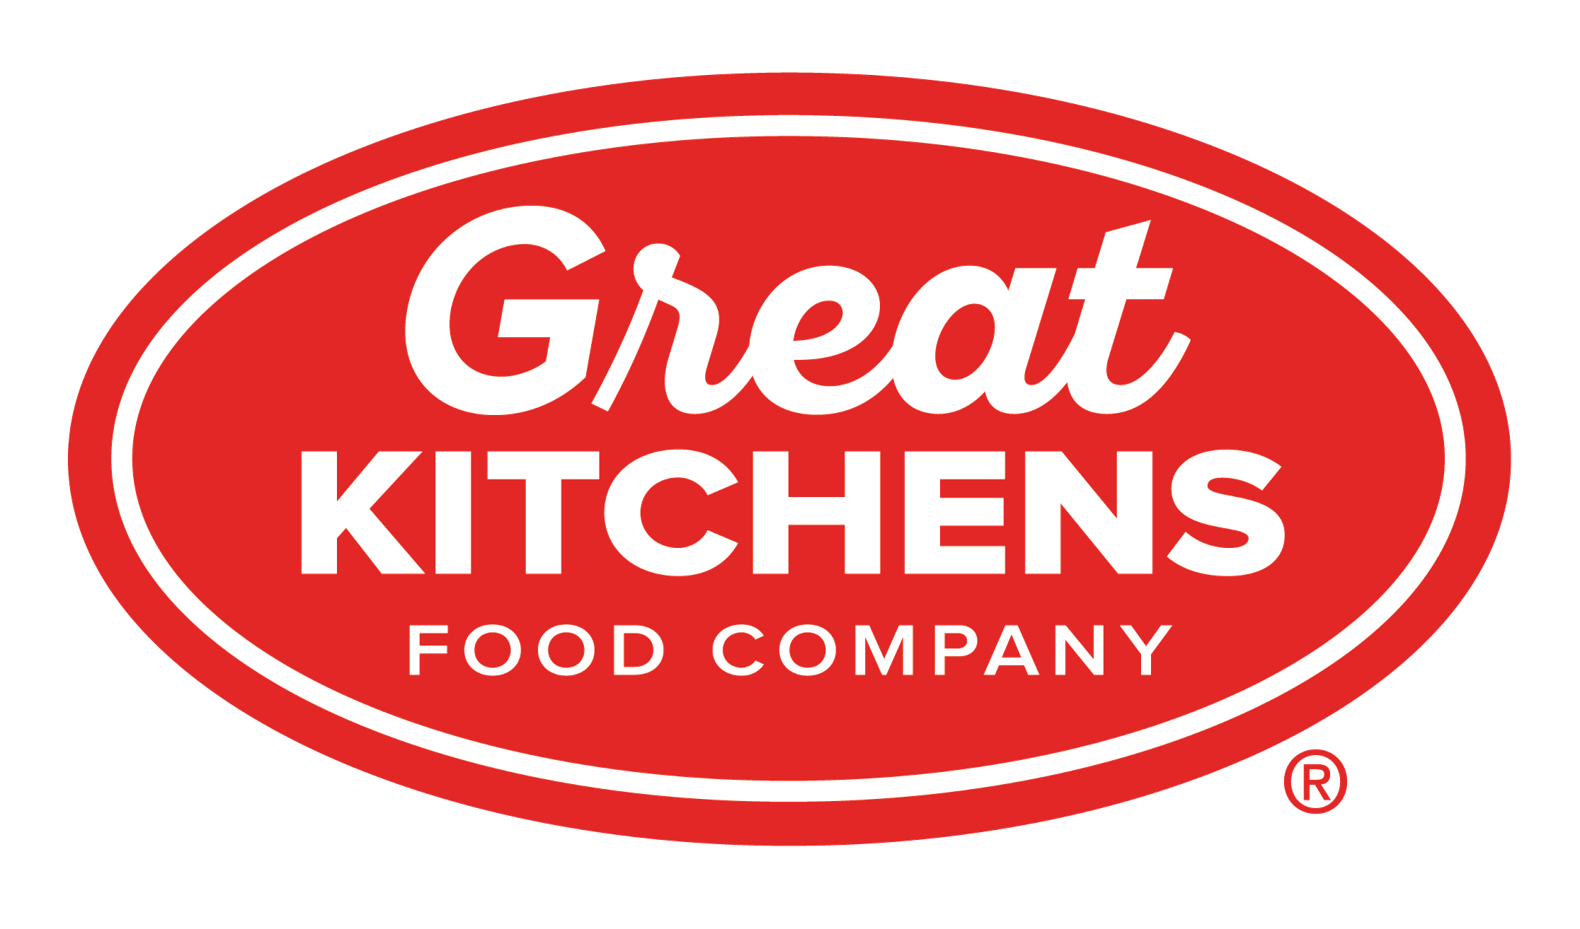 Great Kitchens Food Company